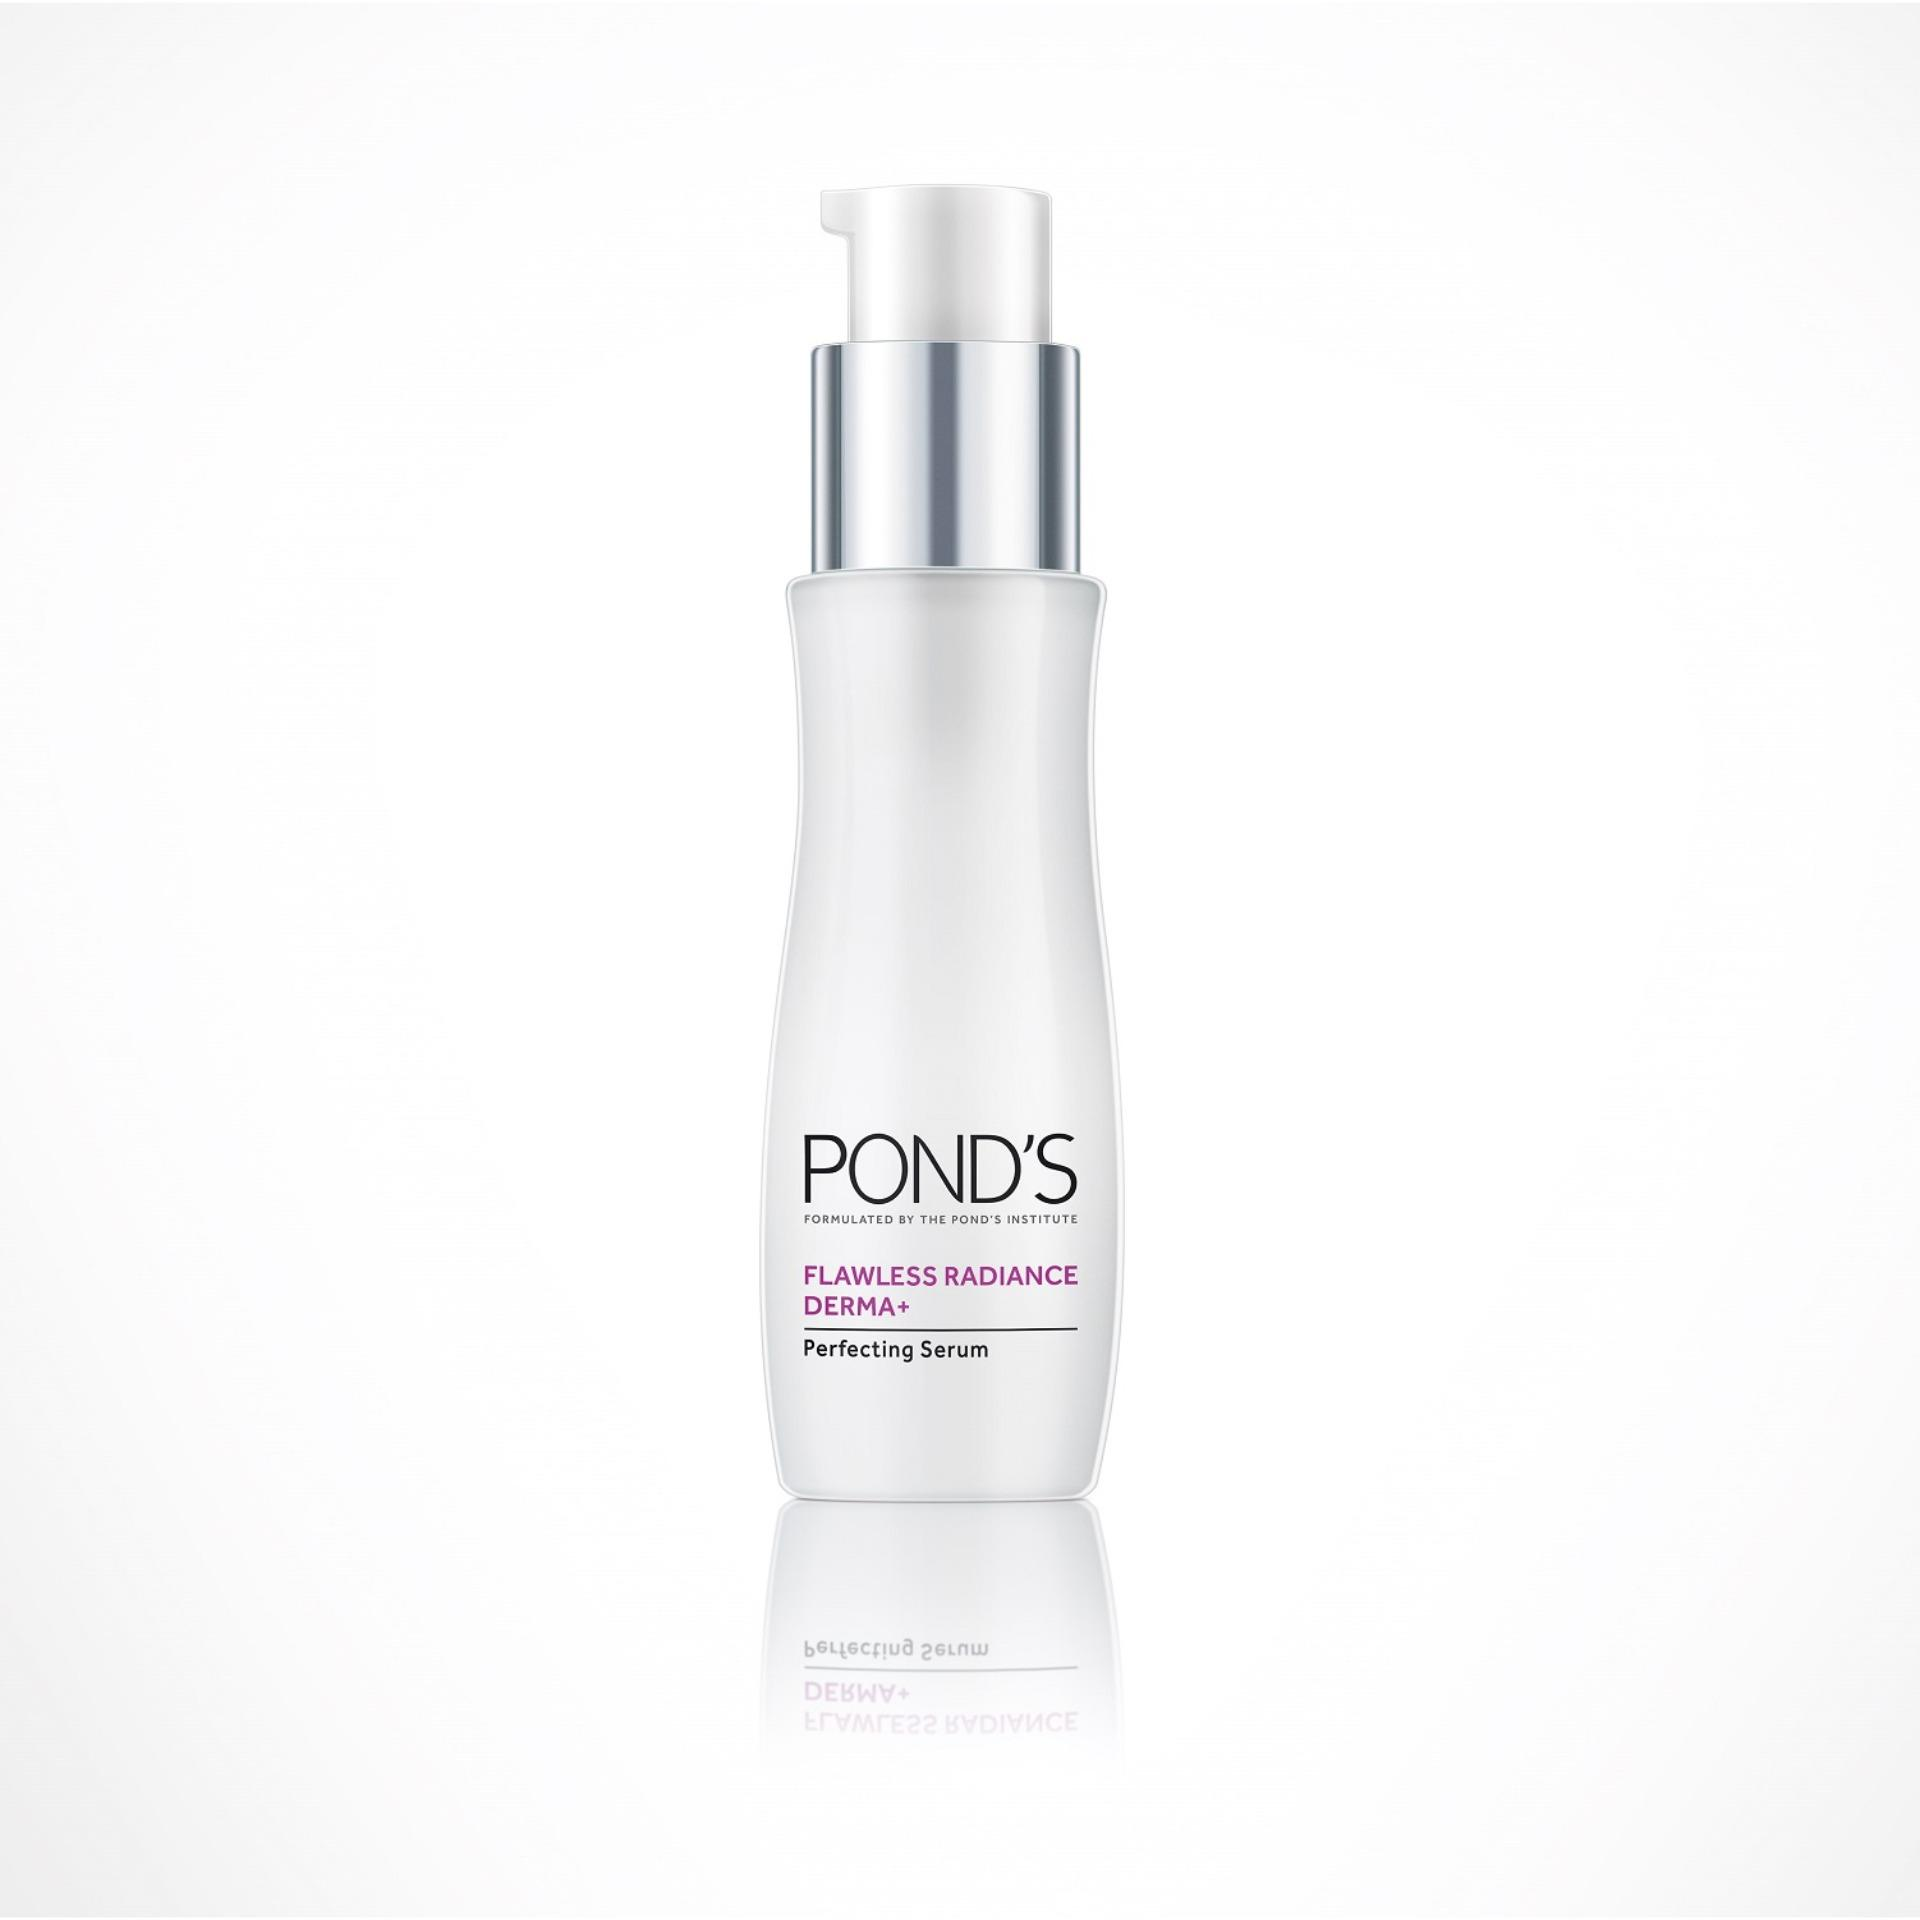 The Price Of Ponds Flawless Radiance Derma Perfecting Serum 30ml Daily Moist 50g Complete Product Preview